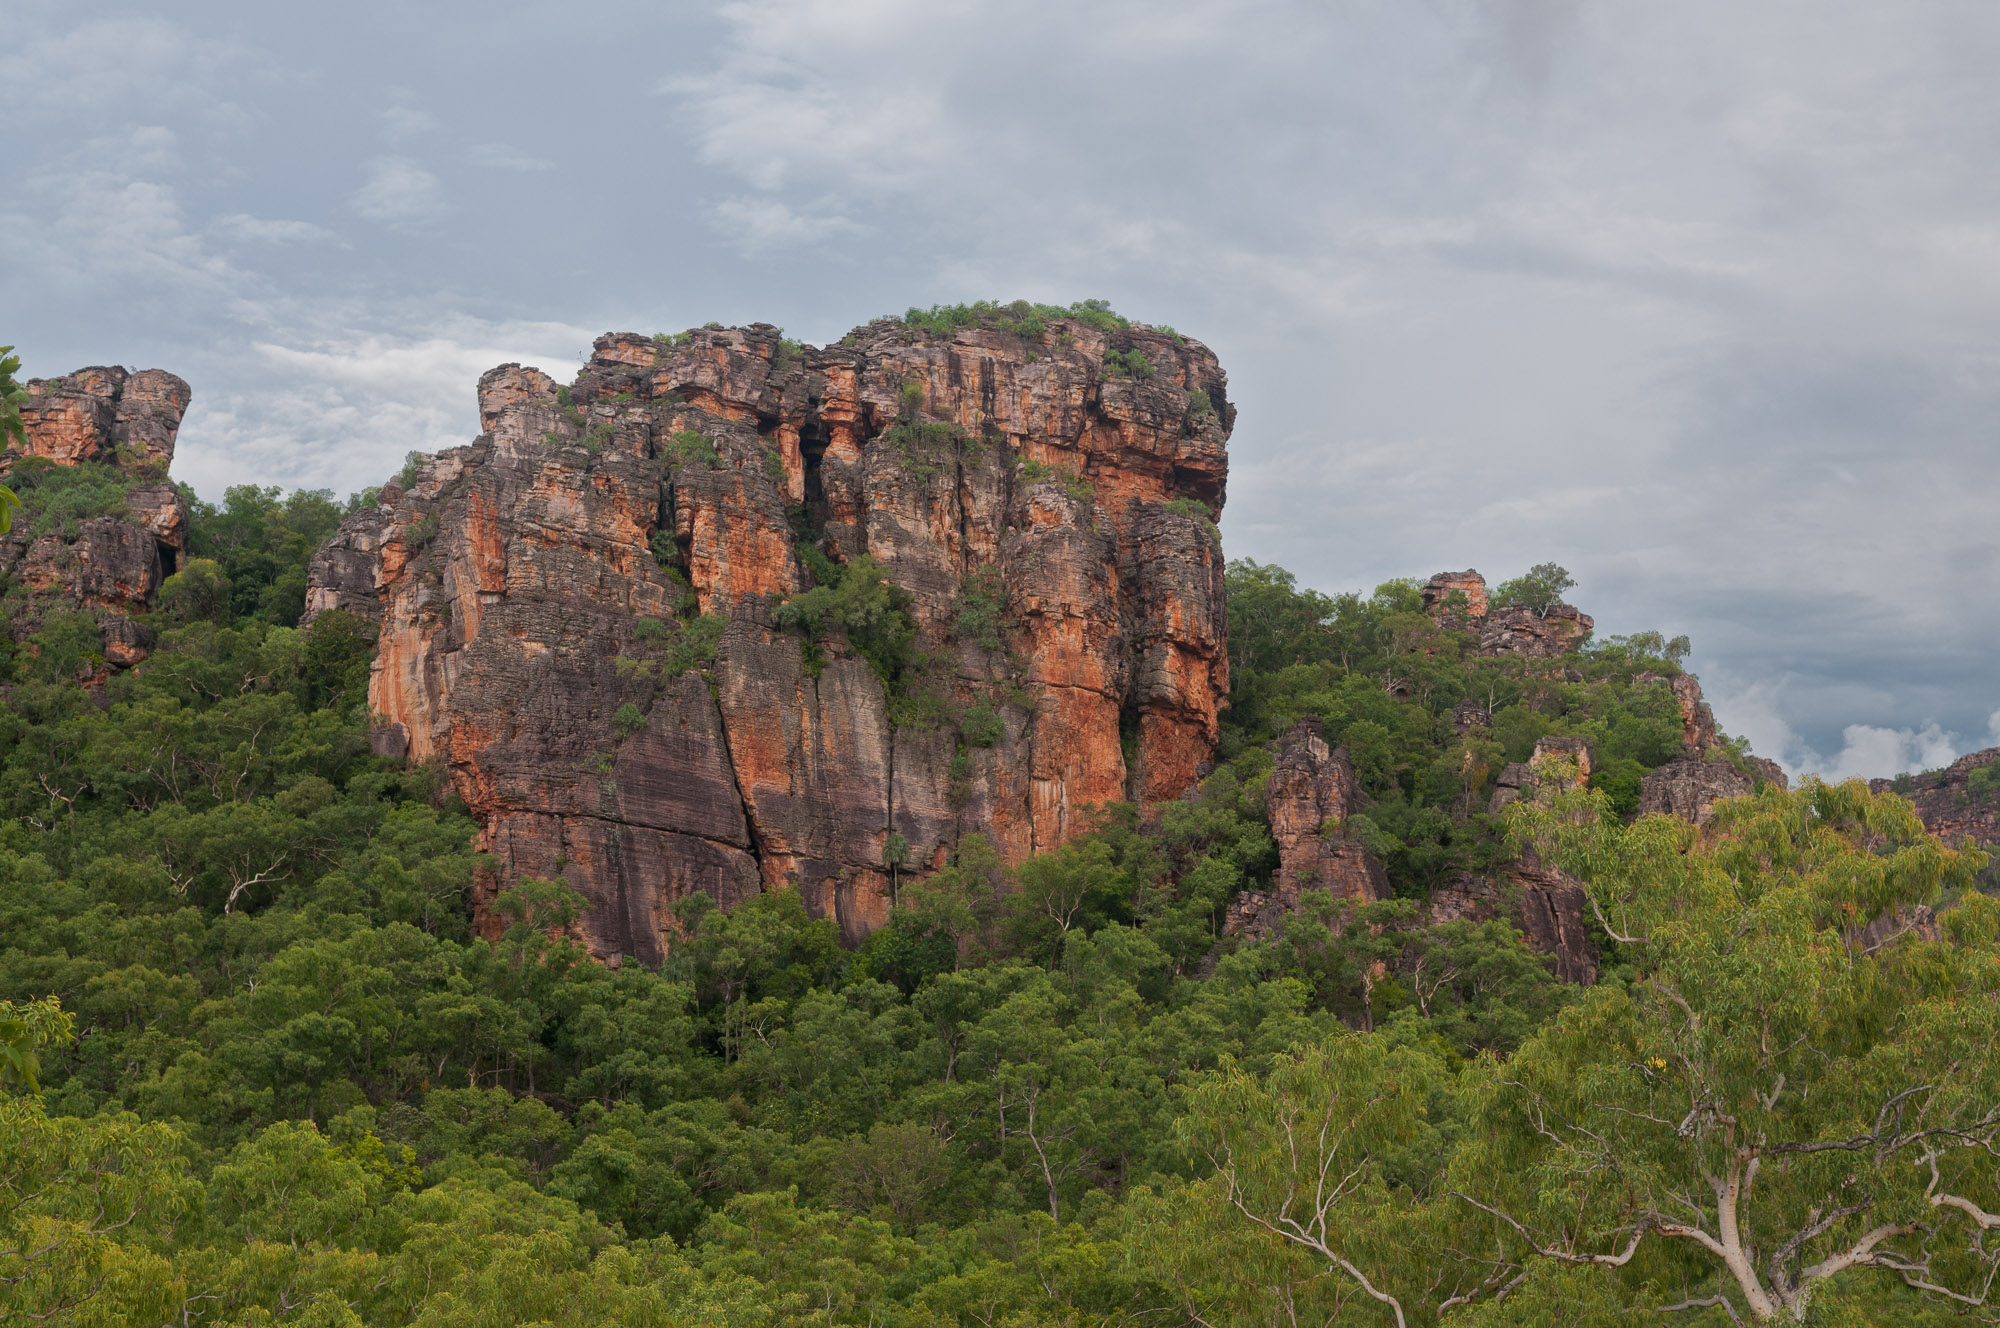 Arnhem Land Escarpment, Kakadu National Park, Australia